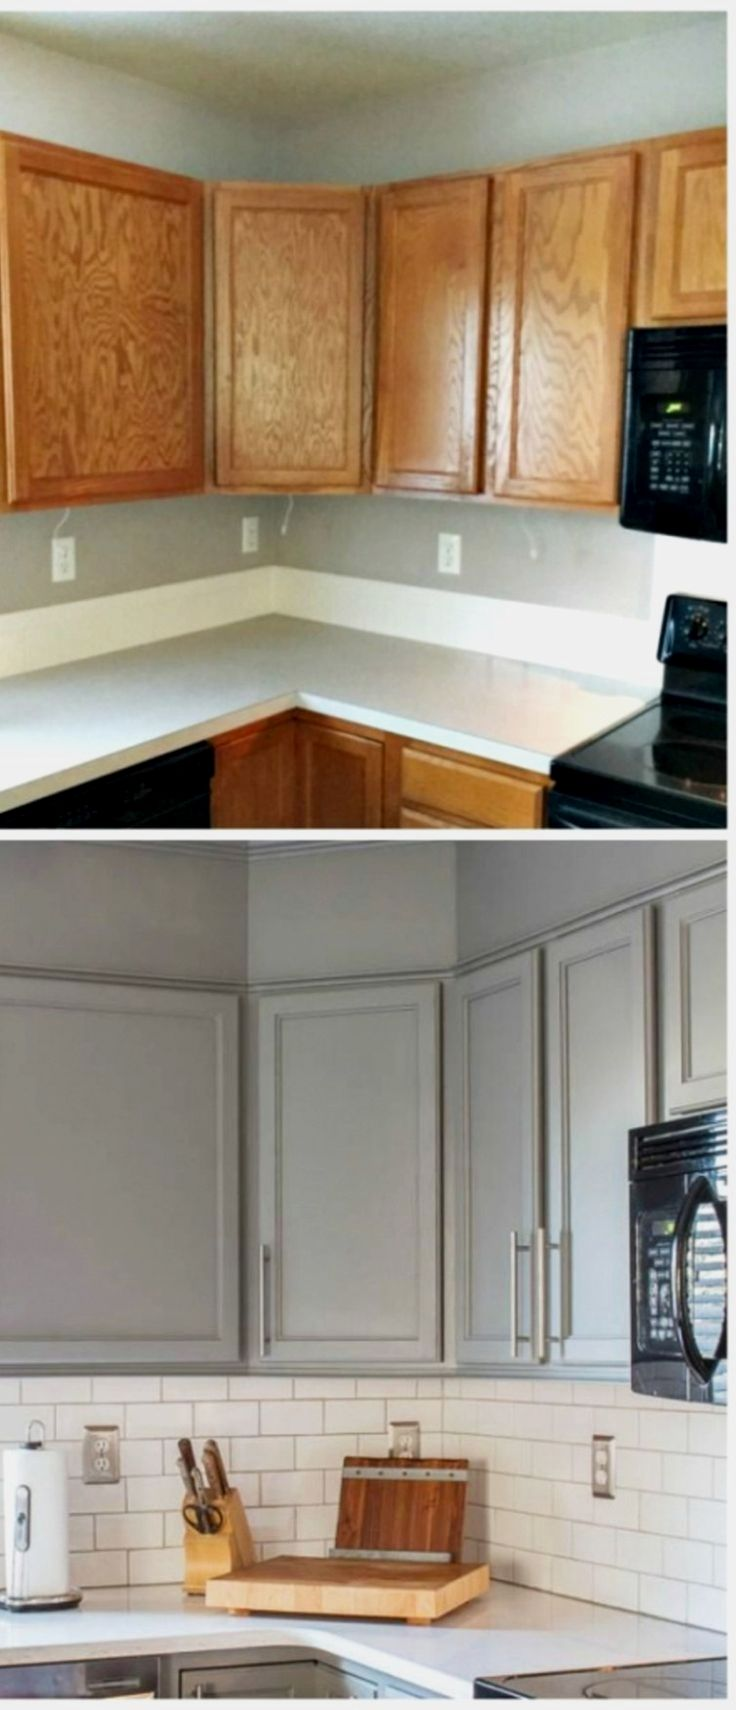 Kitchen Remodel Ideas Before And After Remodeled Small Kitchens Reveals With